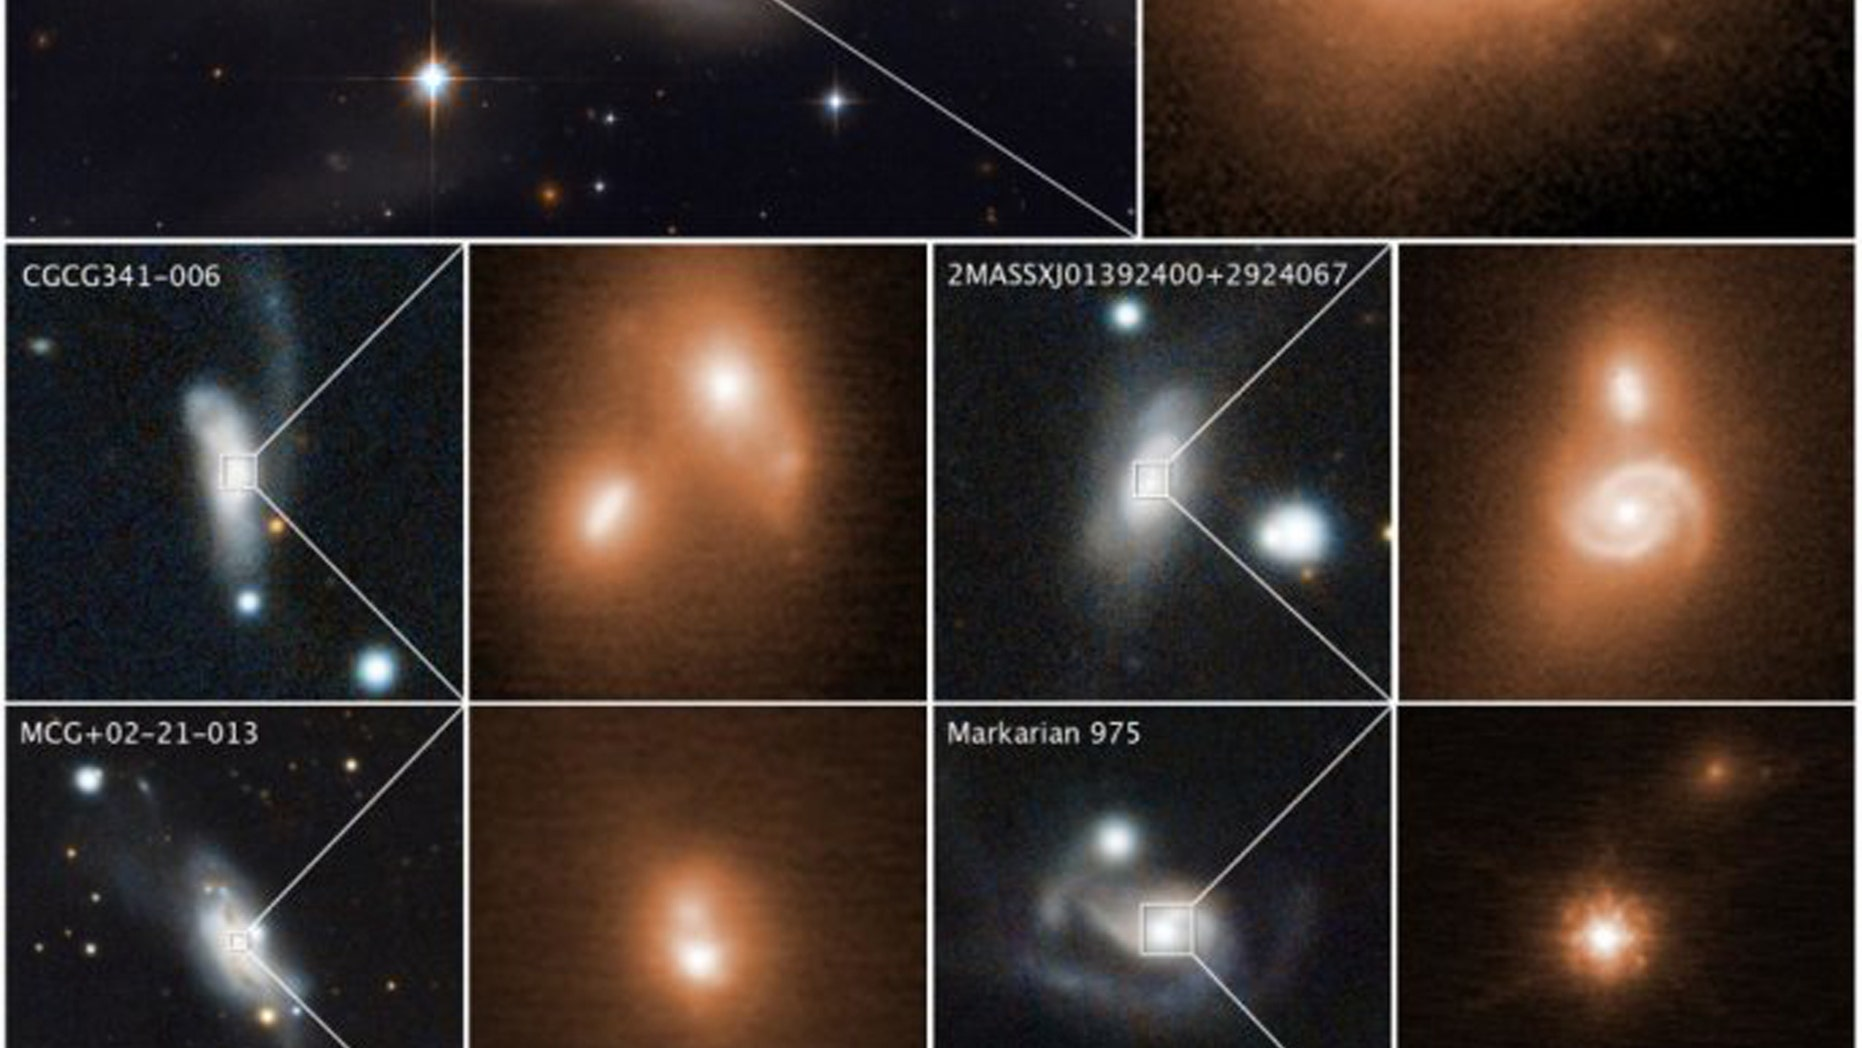 Astronomers observe supermassive black holes in merging galaxies